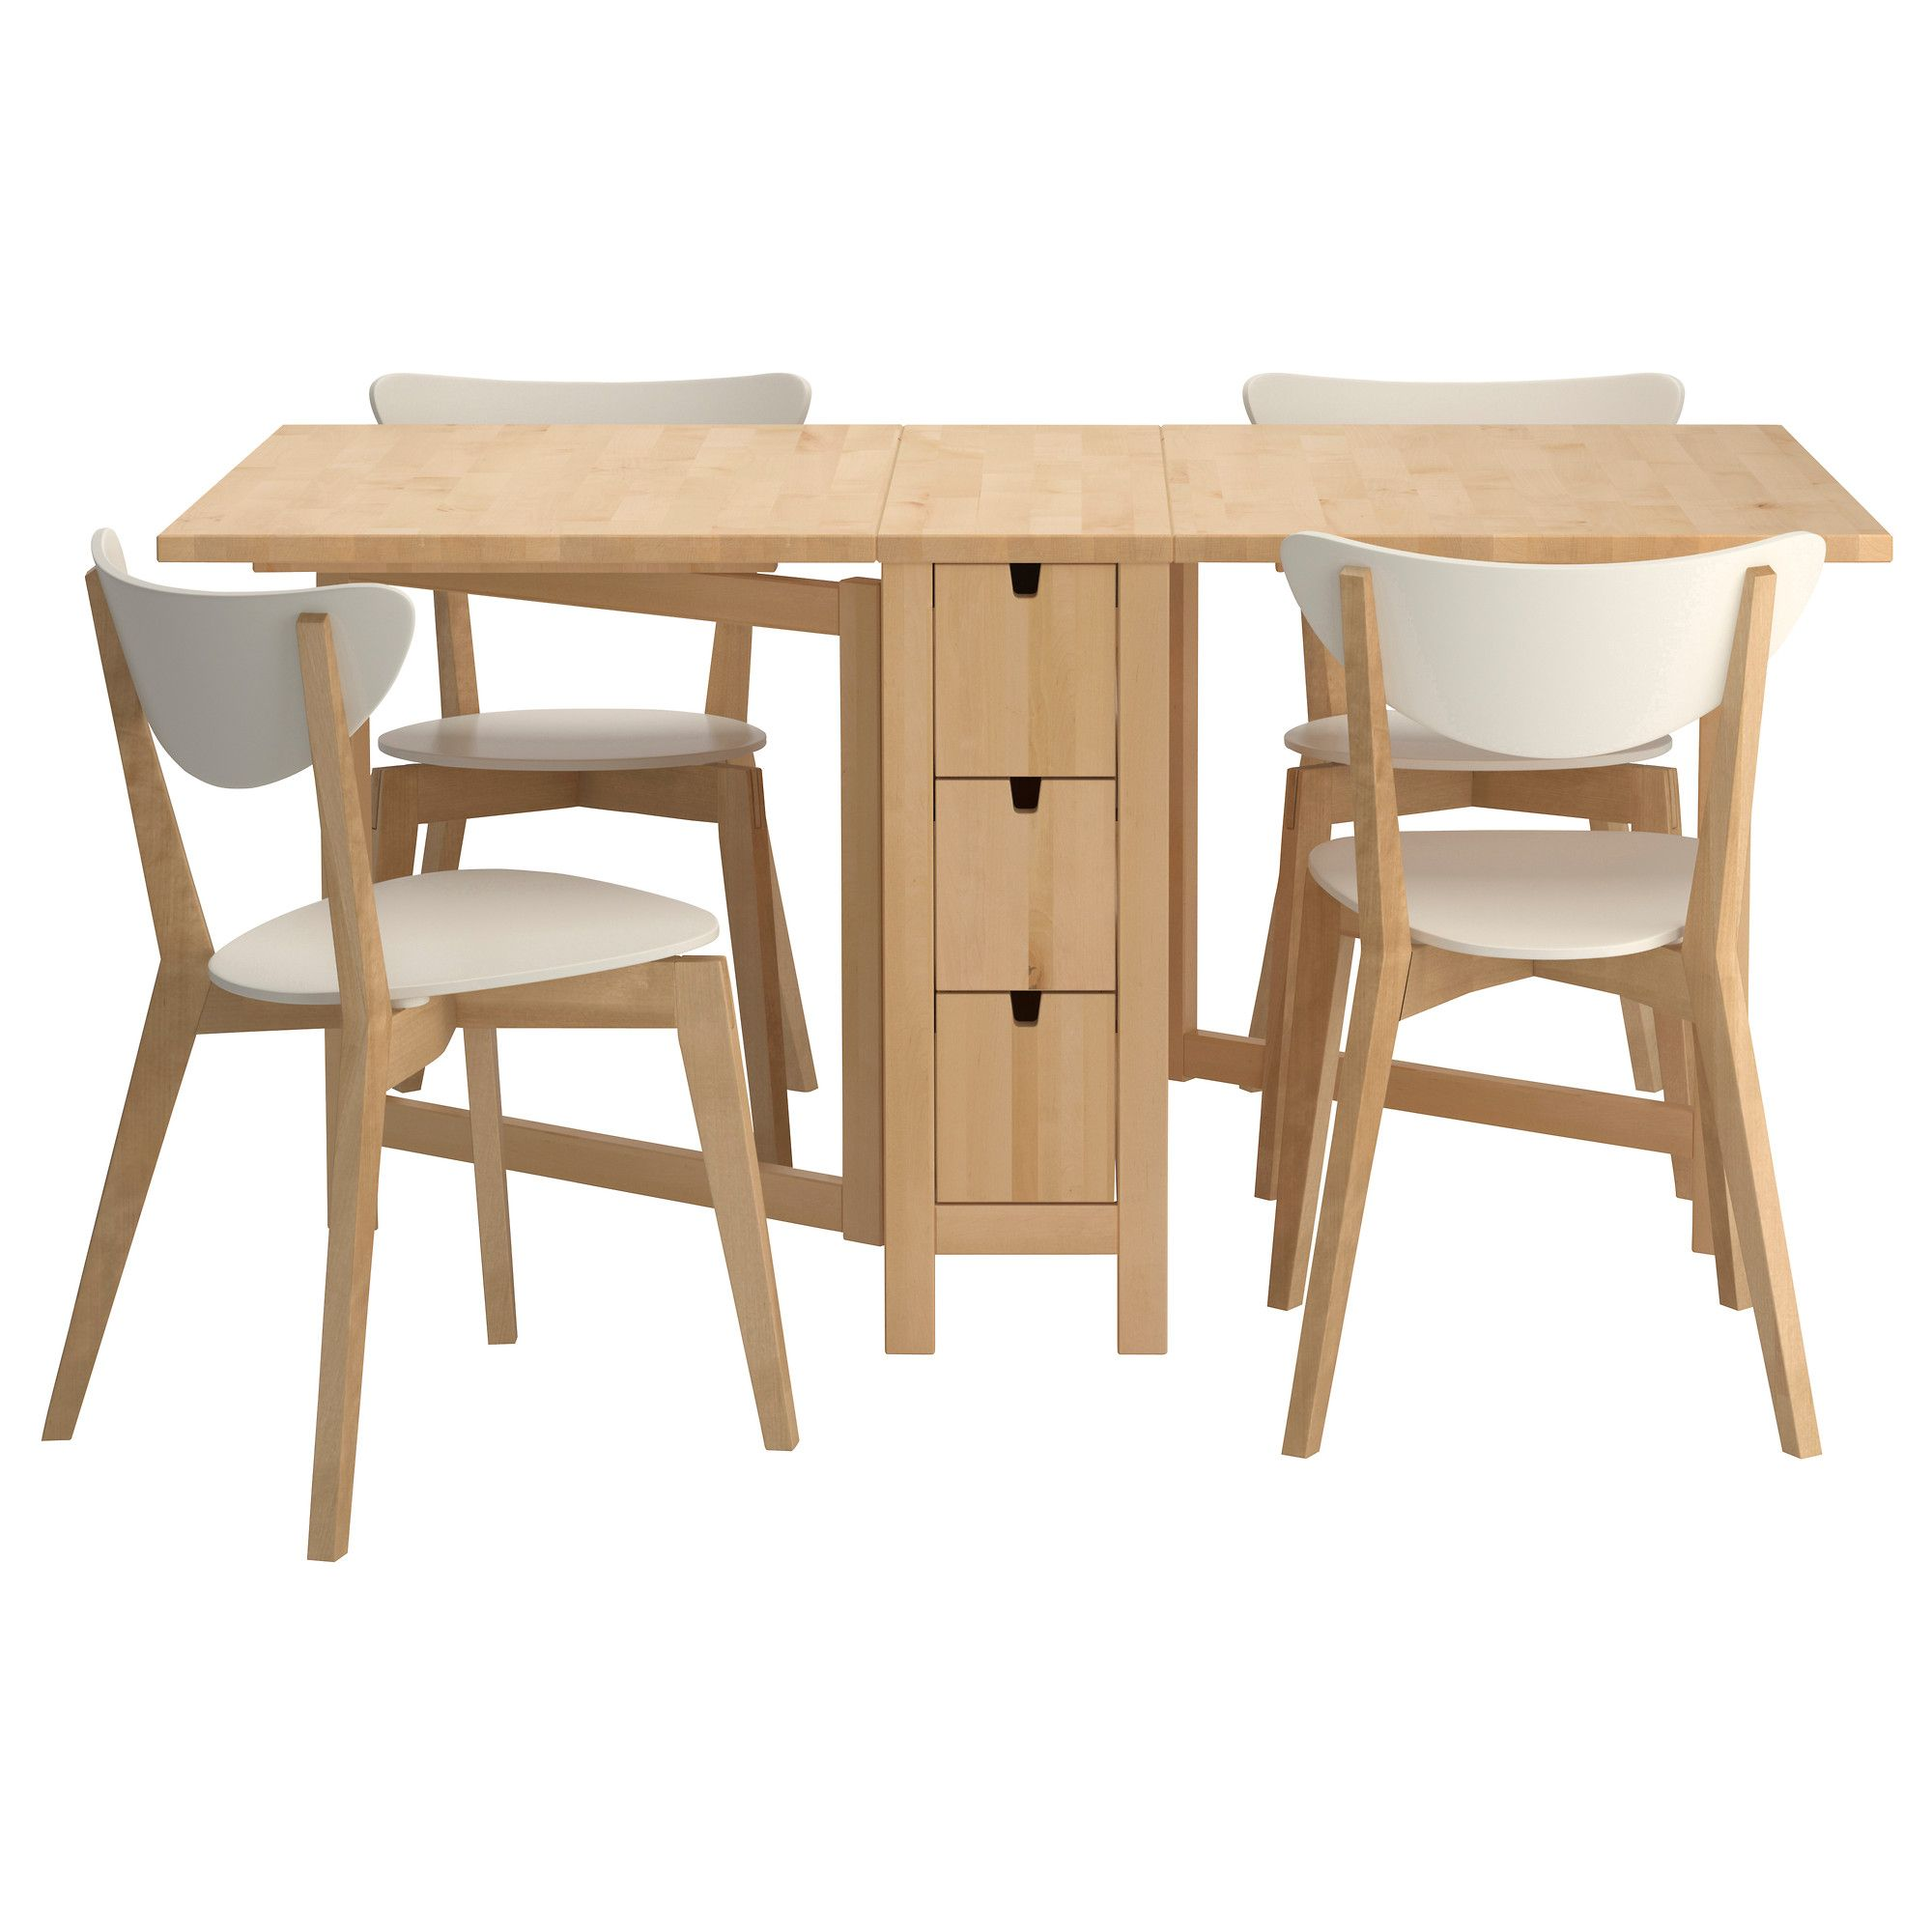 Norden nordmyra table and 4 chairs ikea for the love for Small dining table designs